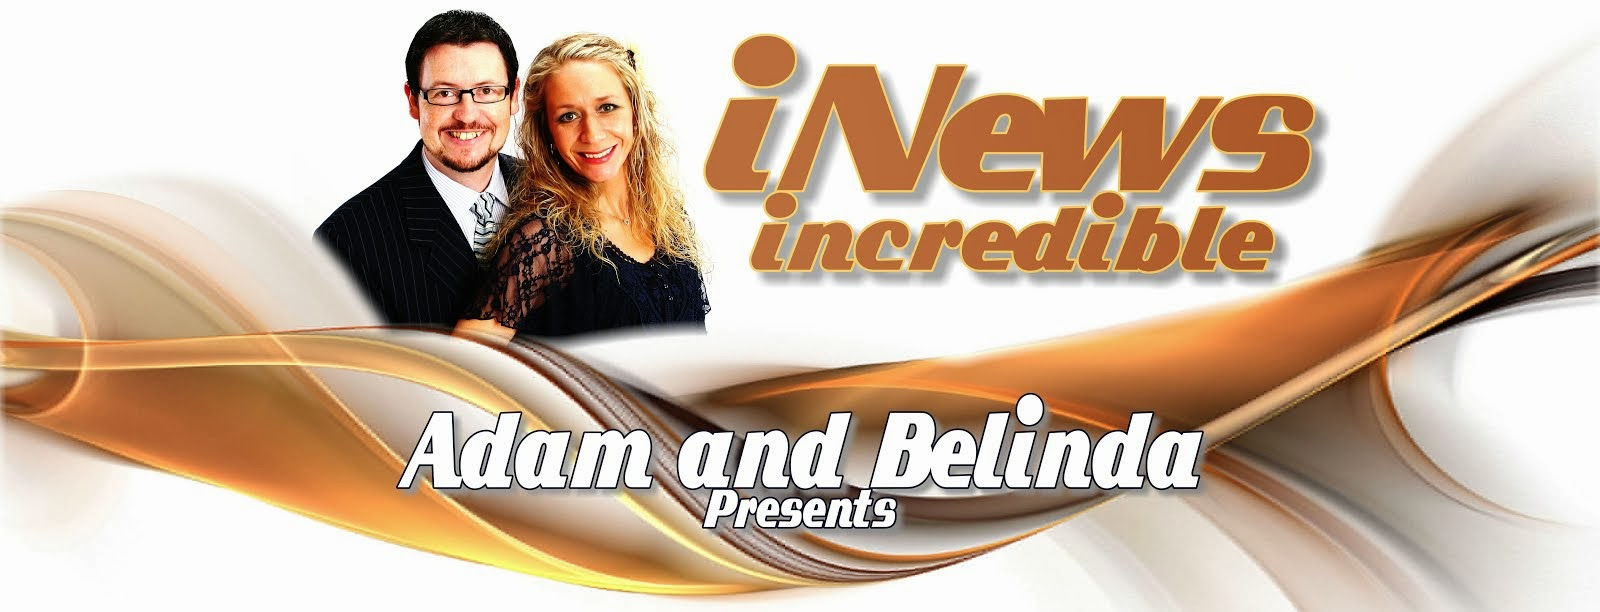 Adam and Belinda Banner